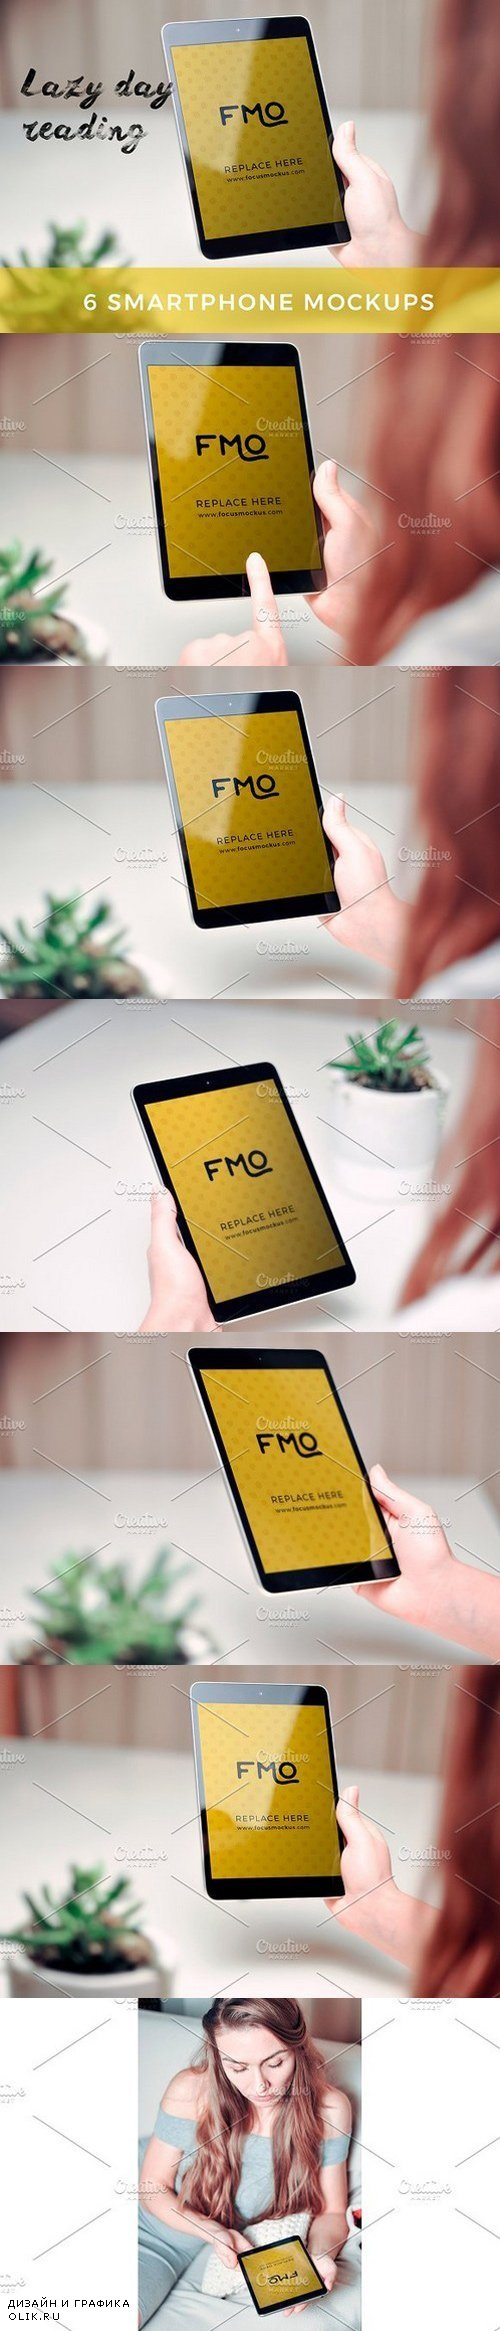 Lazy day reading: 6 Tablet Mockups 1354703